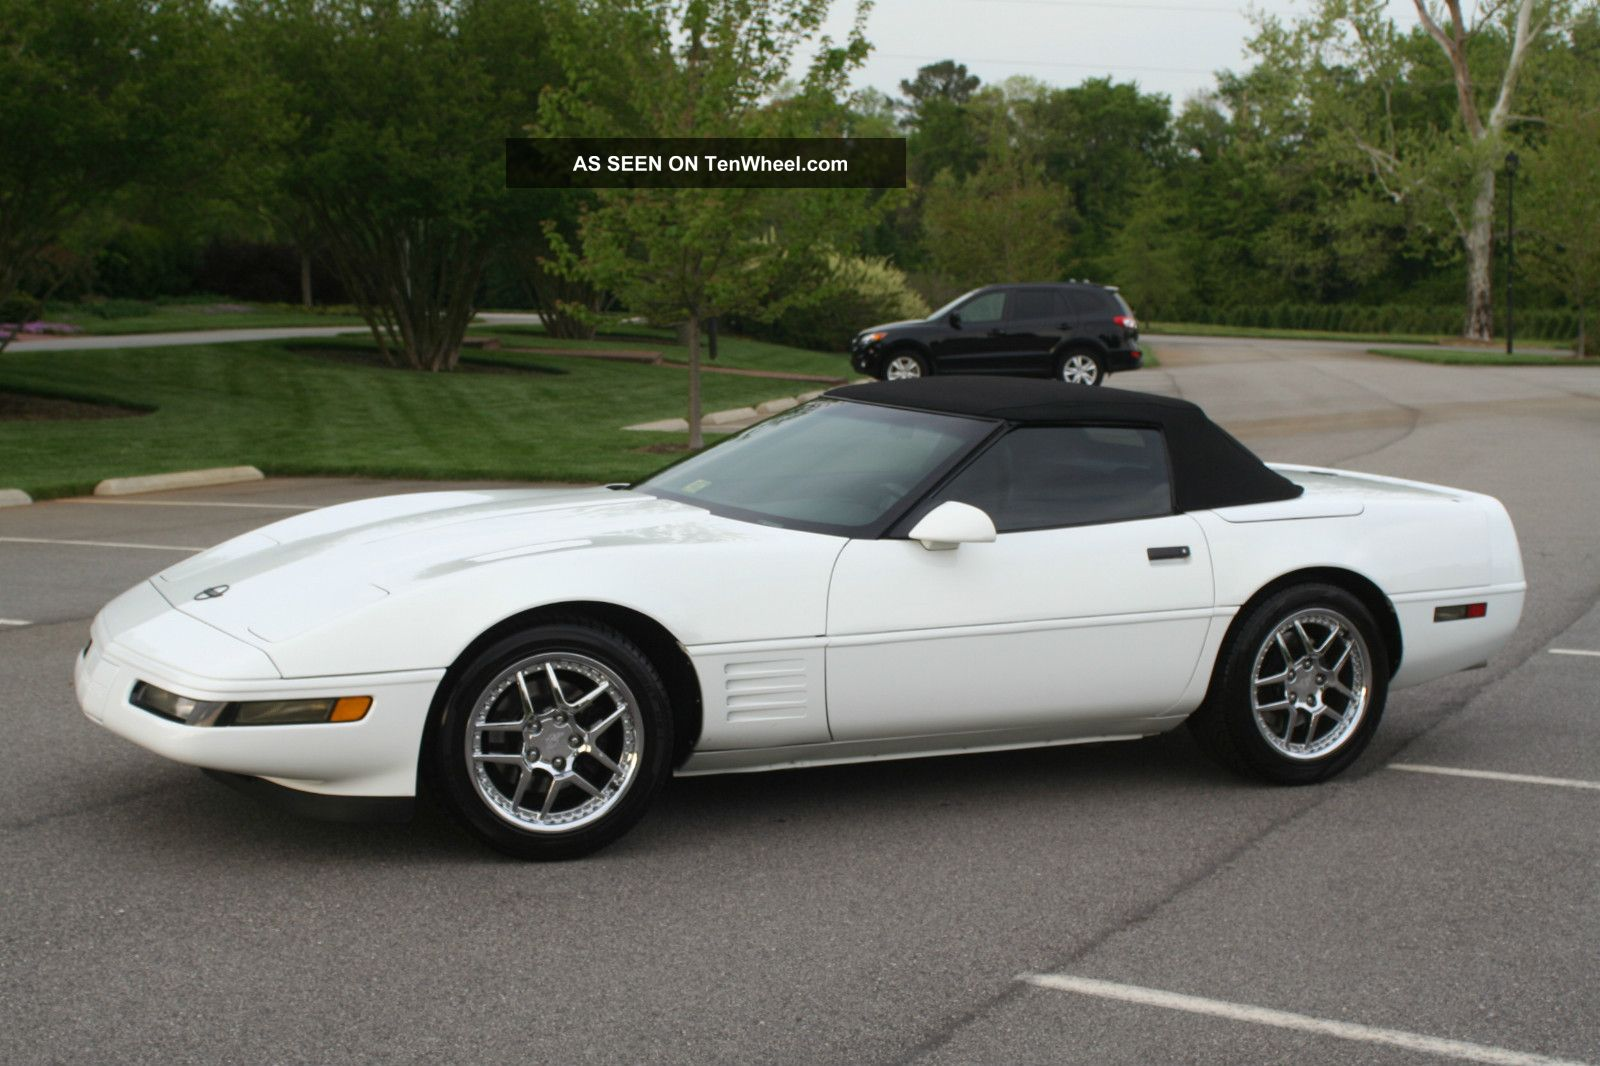 Chevrolet Corvette 5.7 1994 photo - 7